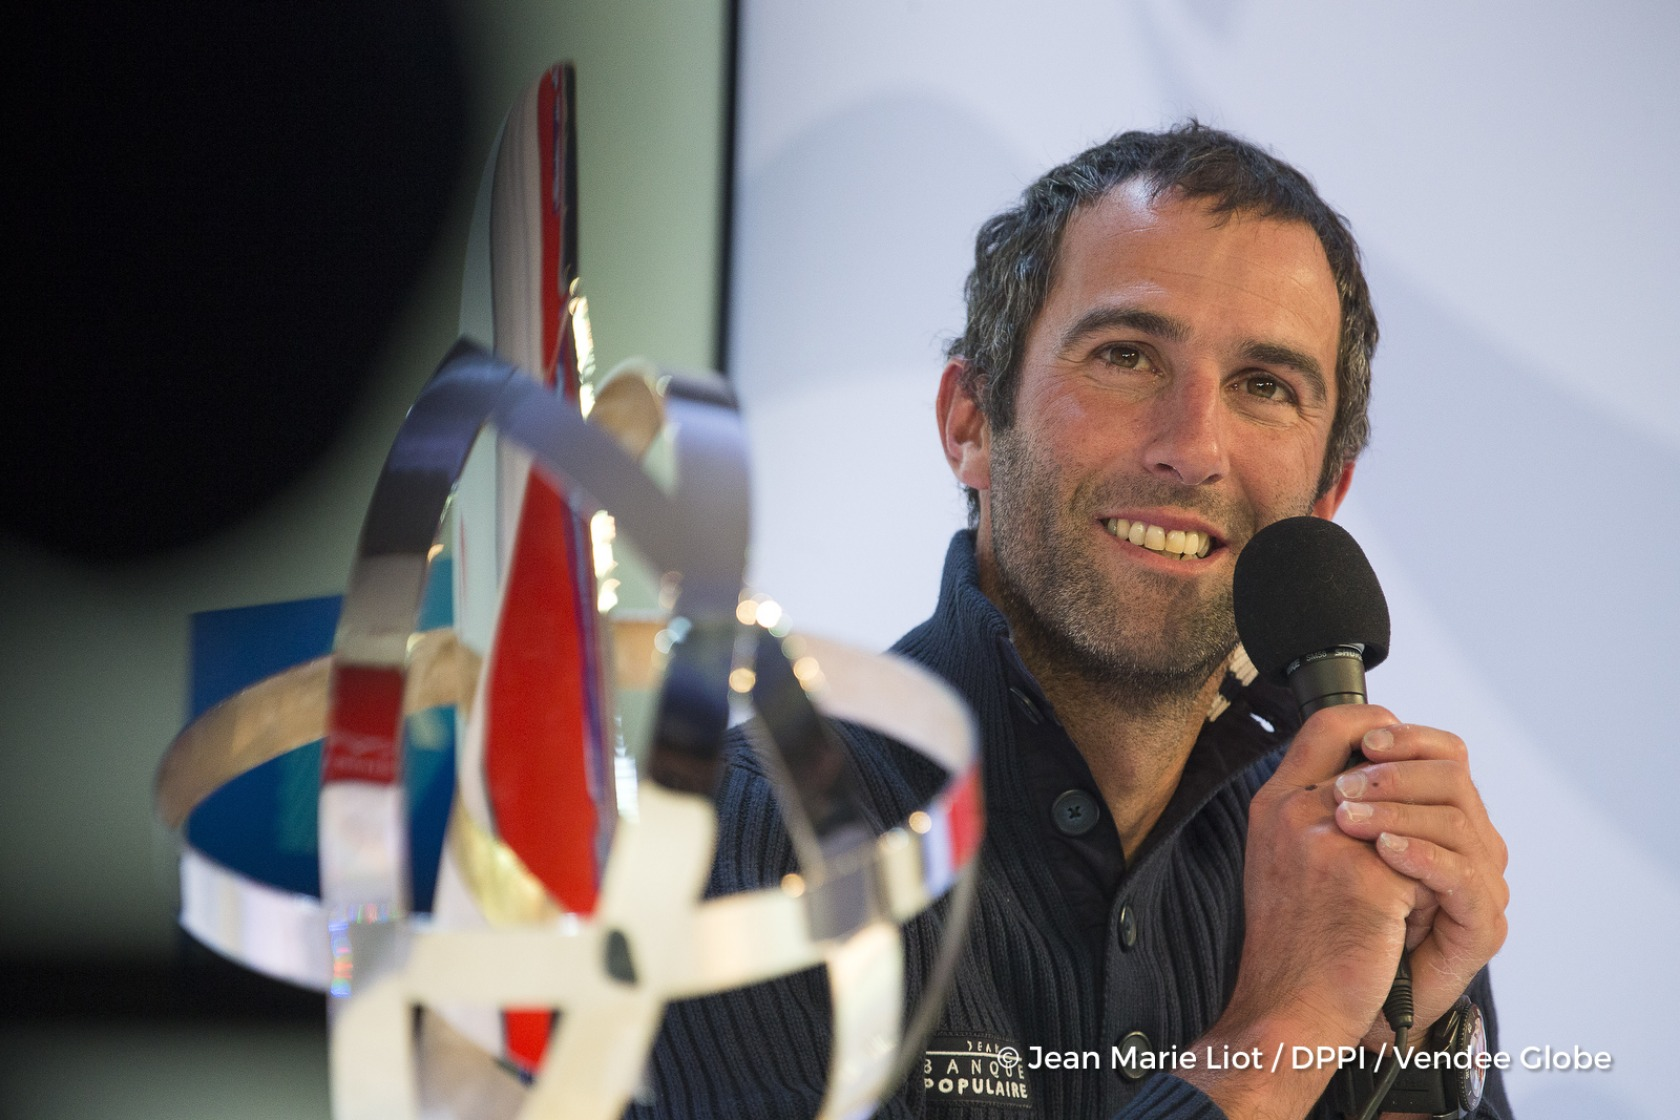 News armel le cl ac h looks back at his race vend e globe - Armel le cleac h ...